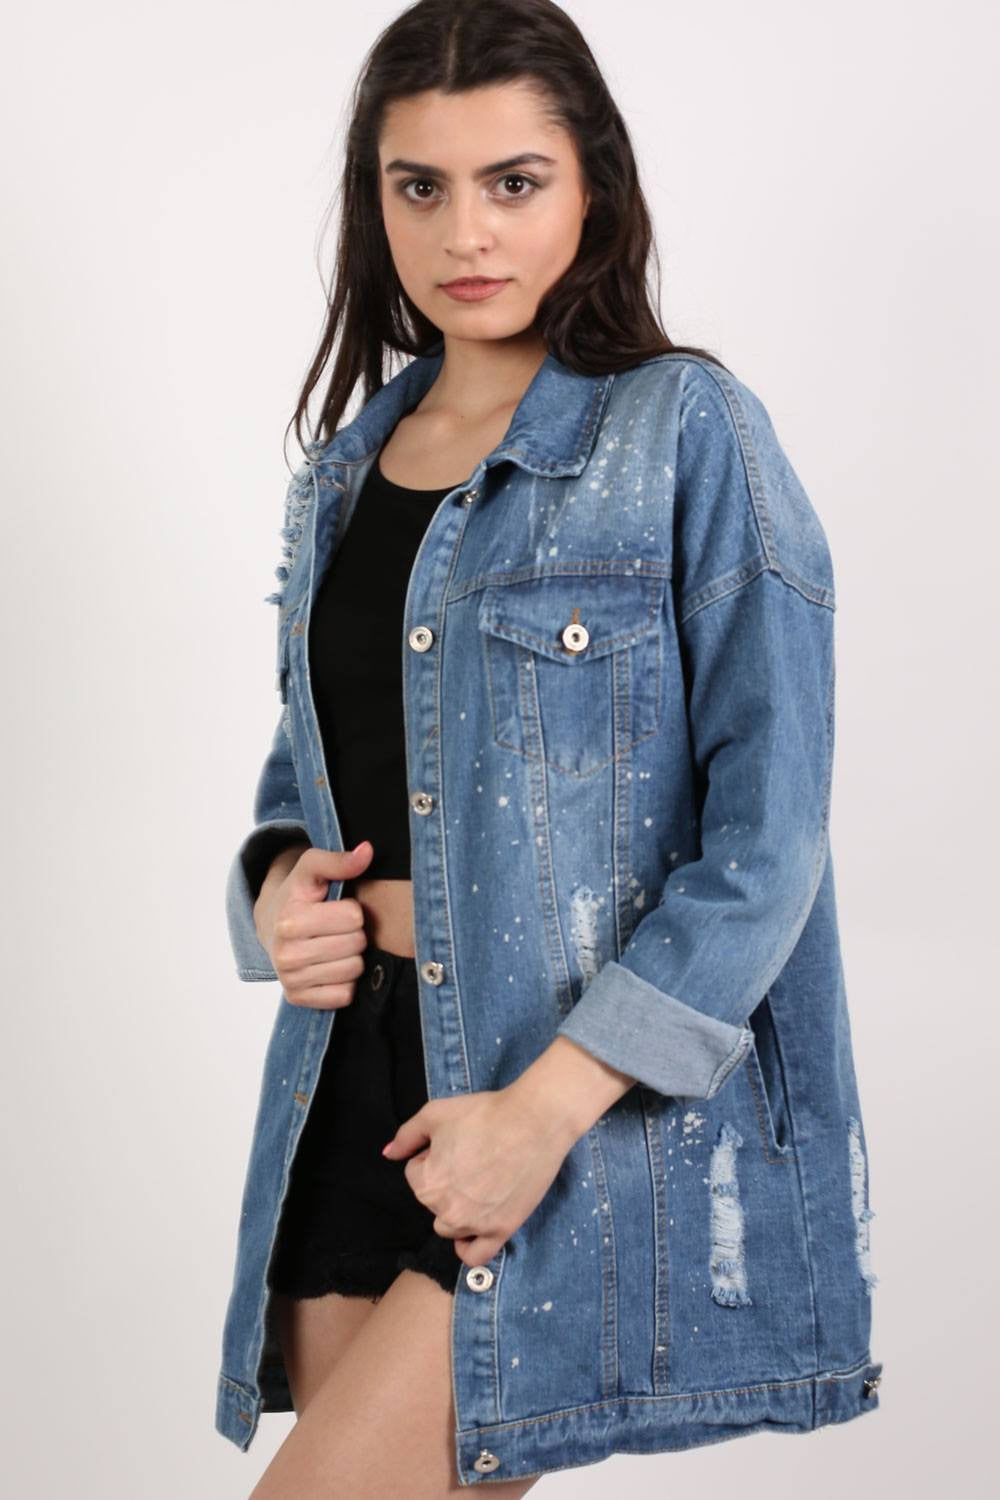 Oversized Paint Splattered Ripped Denim Jacket in Denim MODEL SIDE